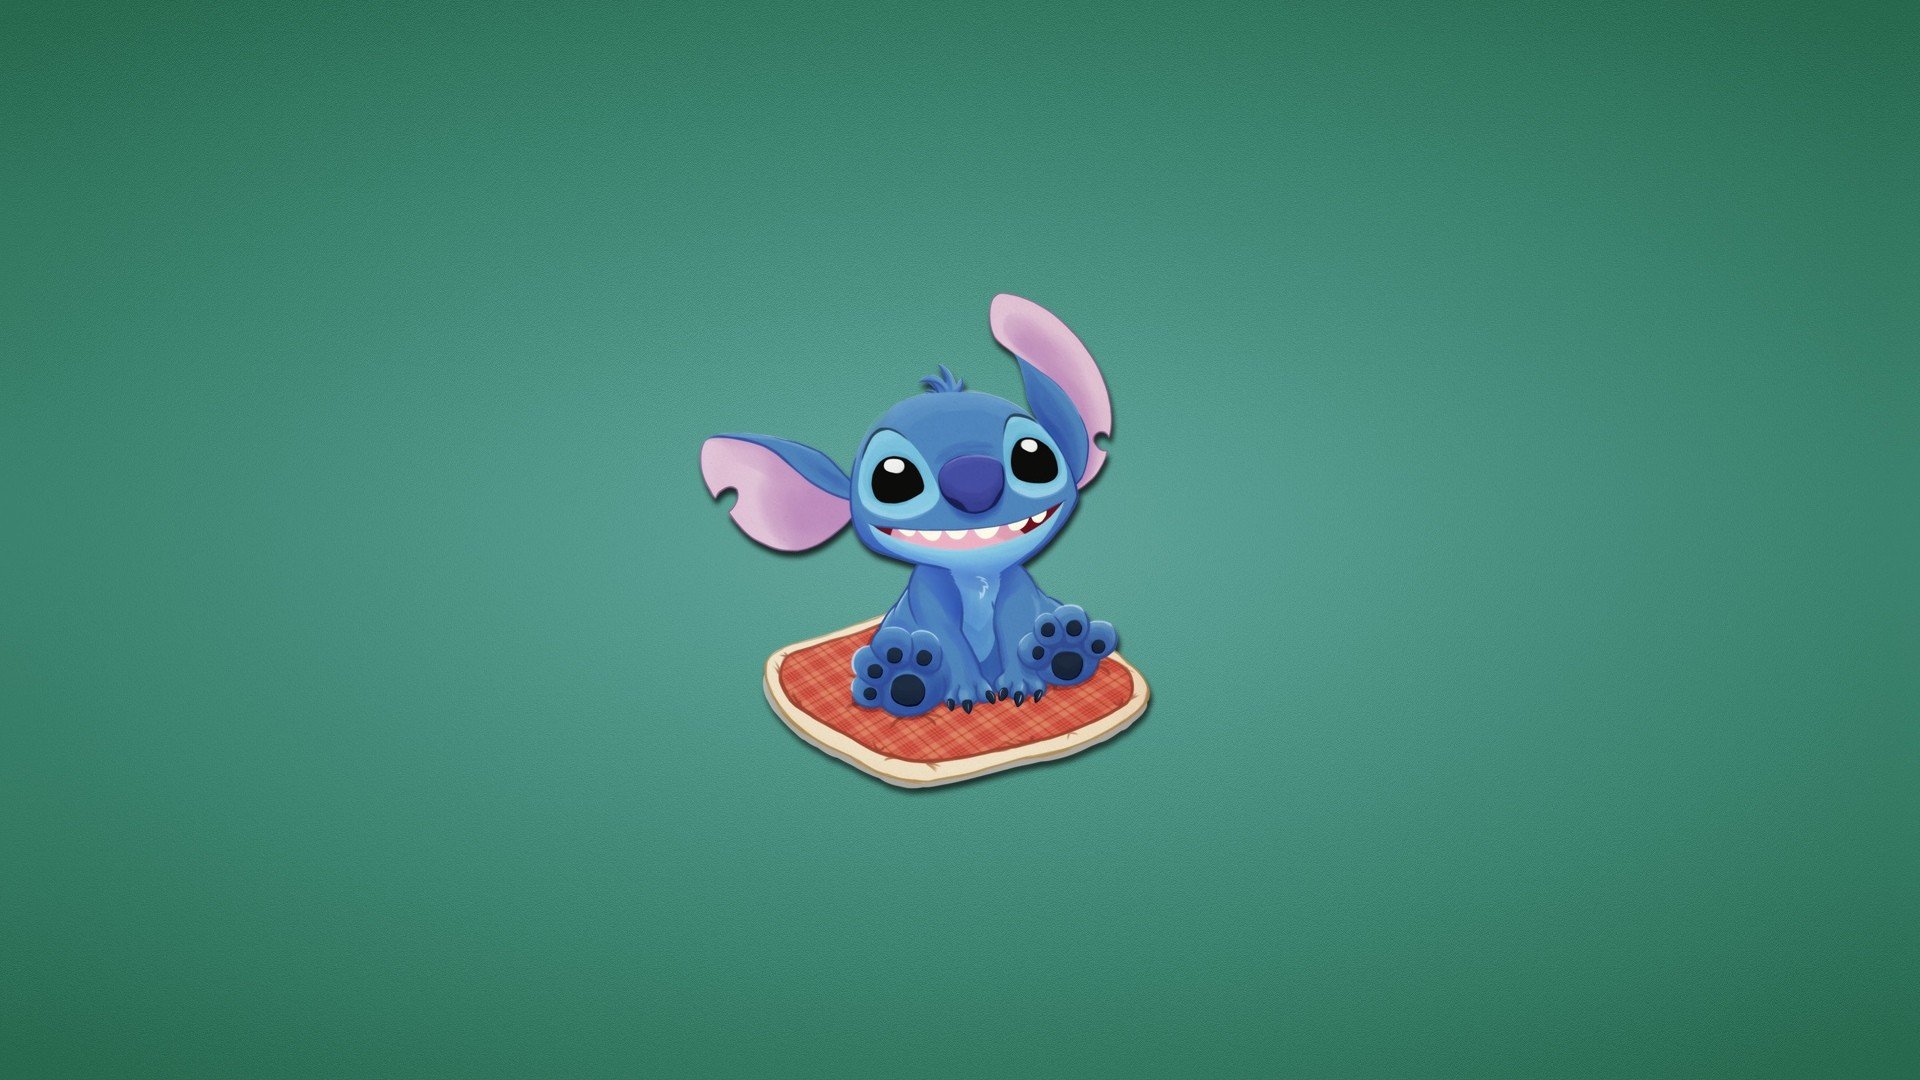 Lilo and Stitch for 1920 x 1080 HDTV 1080p resolution